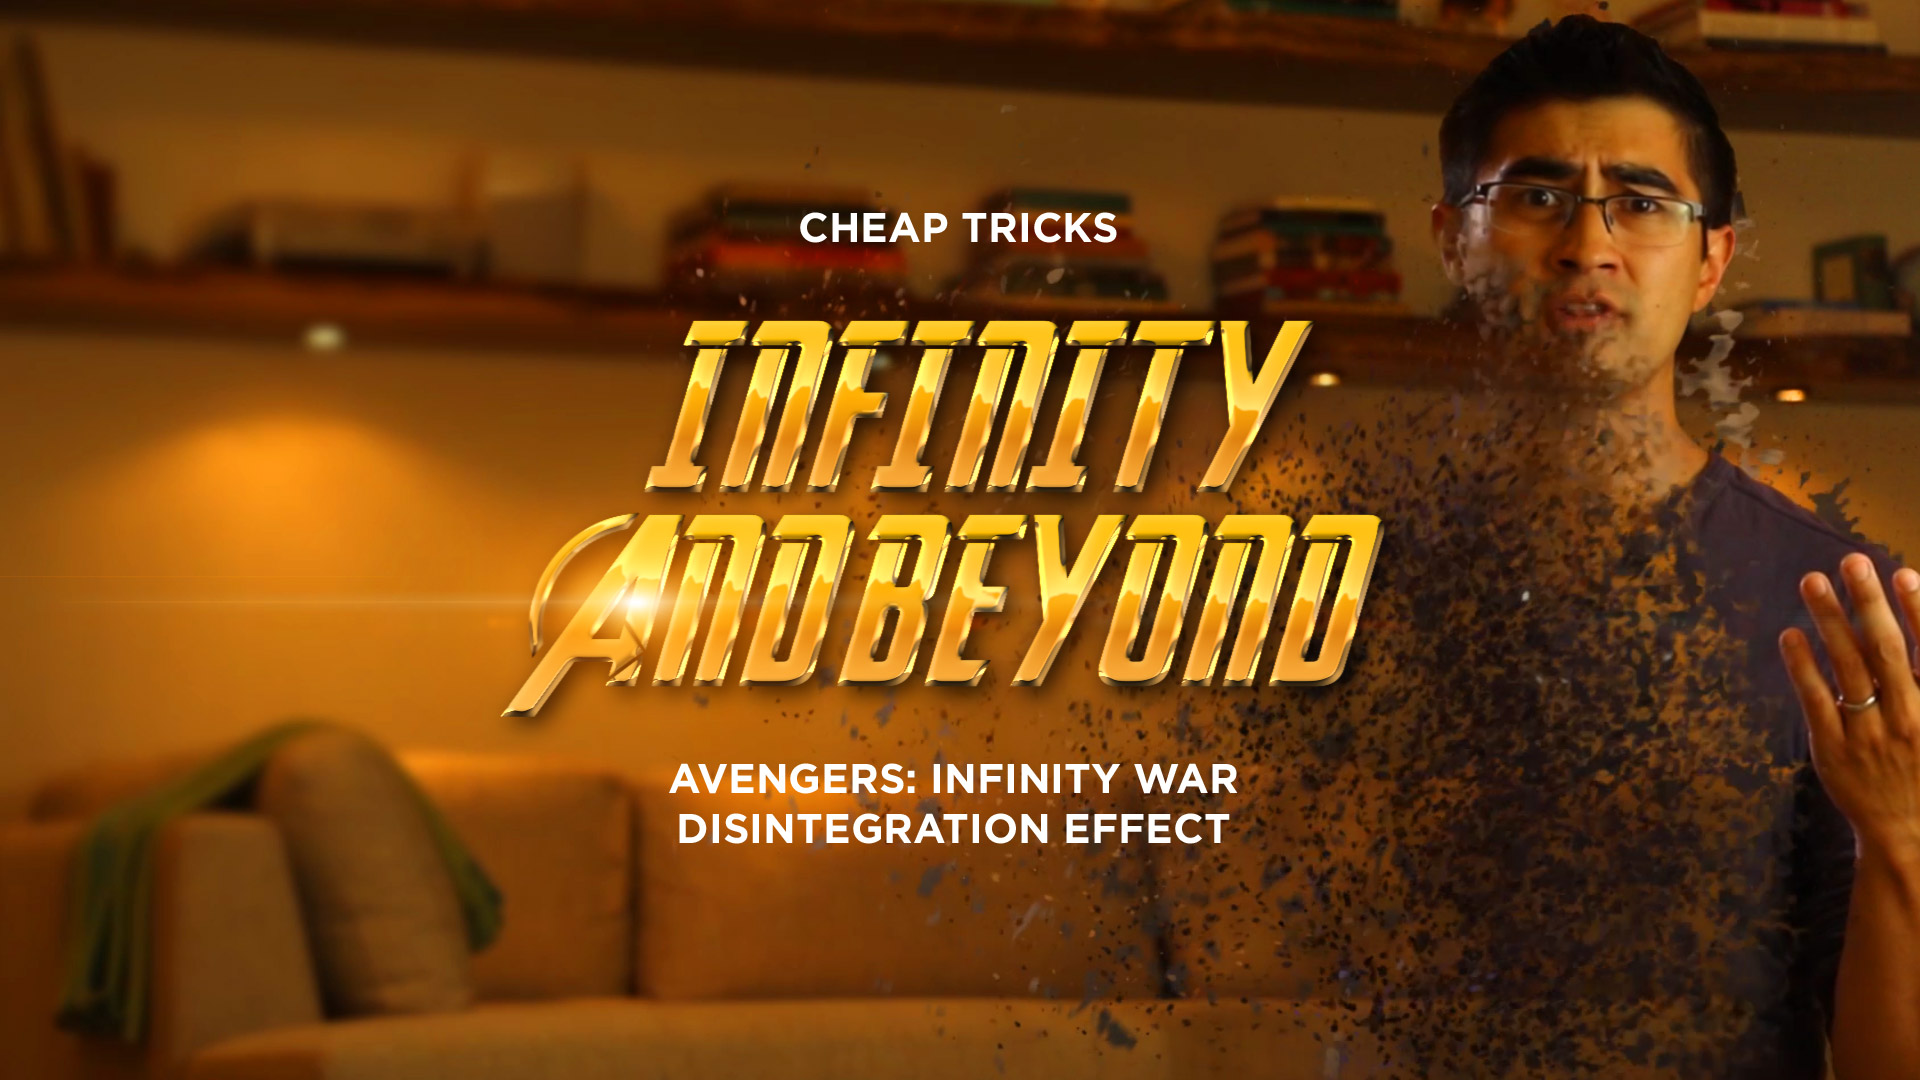 Cheap Tricks #3: Infinity and Beyond